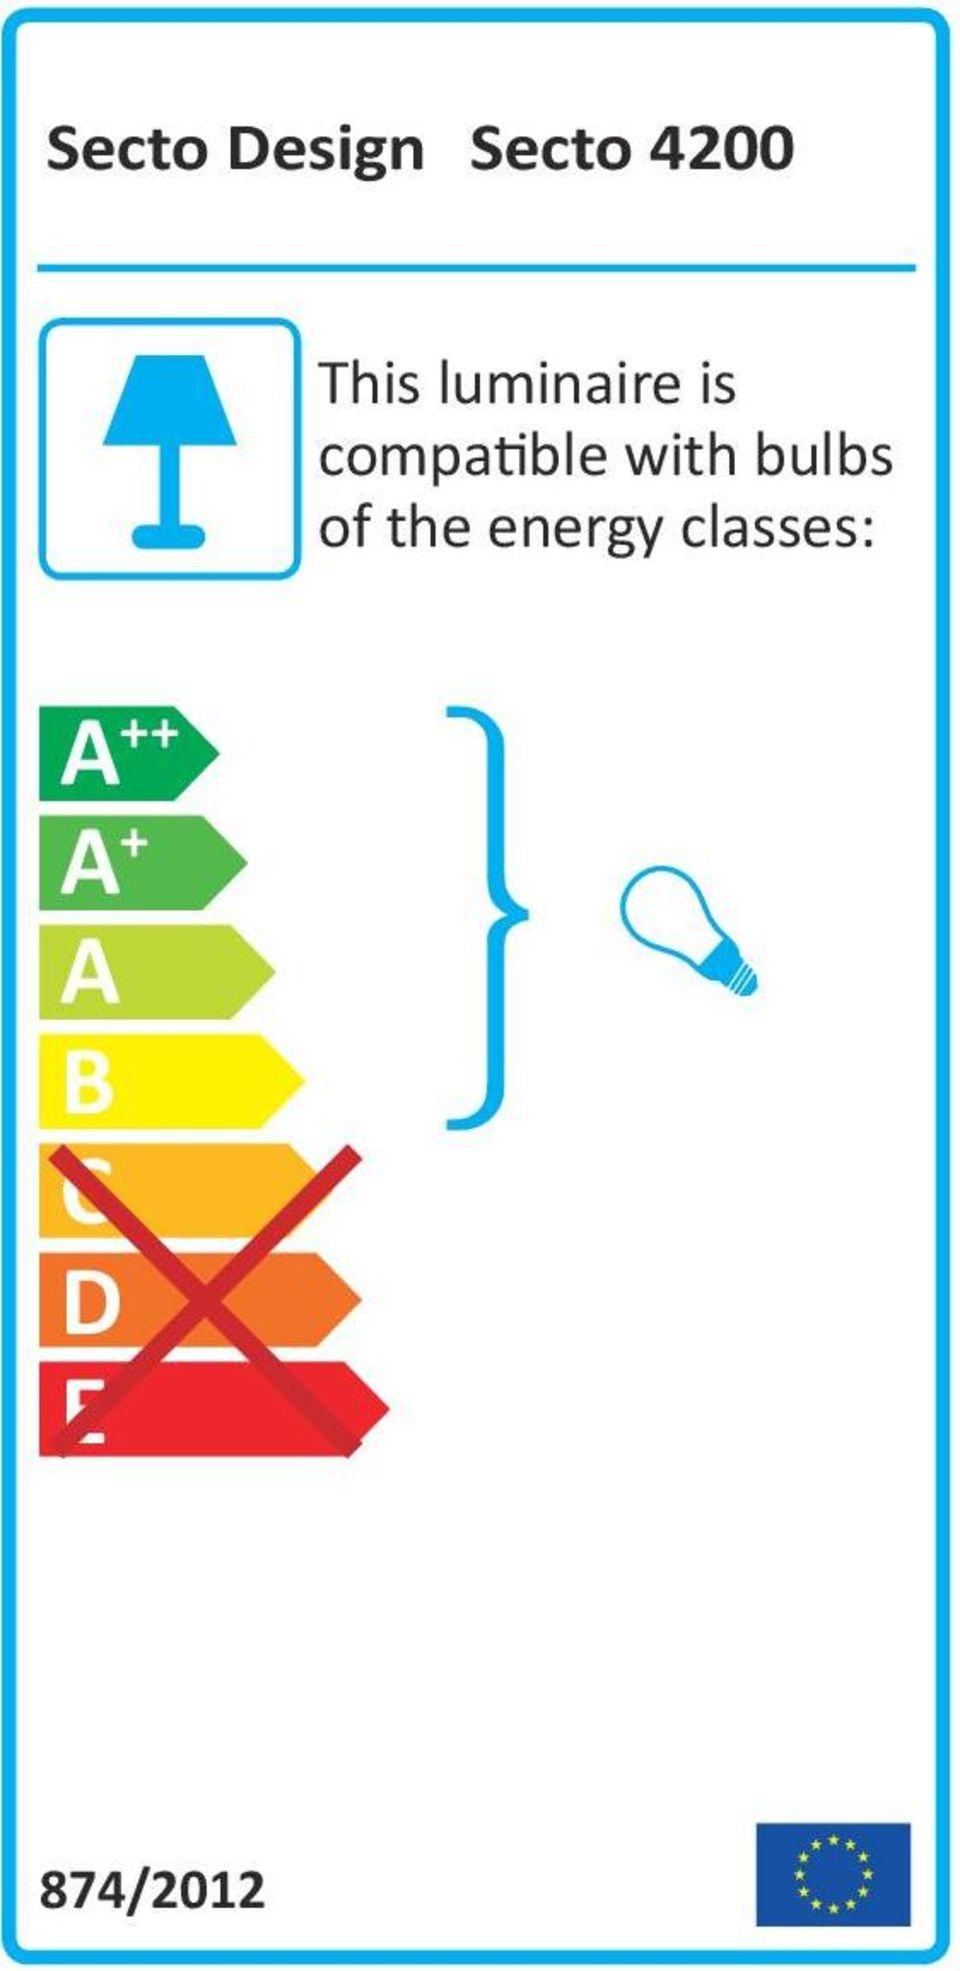 bulbs of the energy classes: